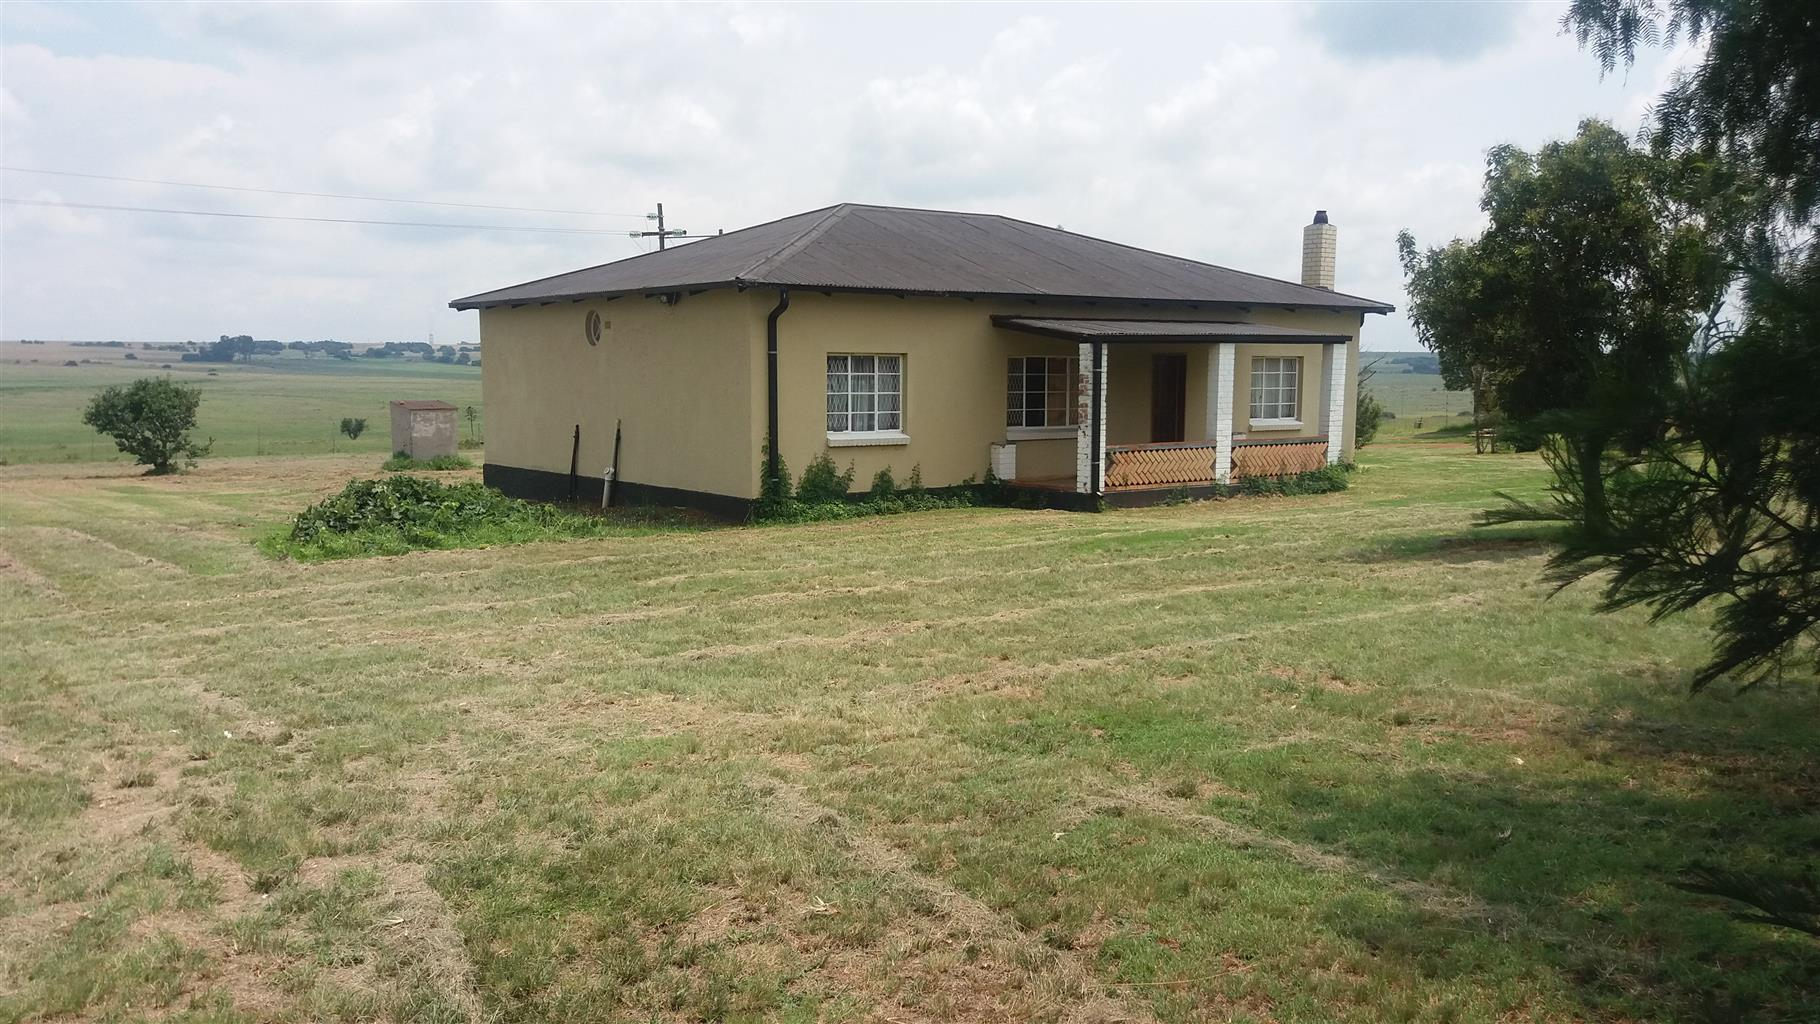 Contractor accommodation near Kusile with large yard and outbuildings